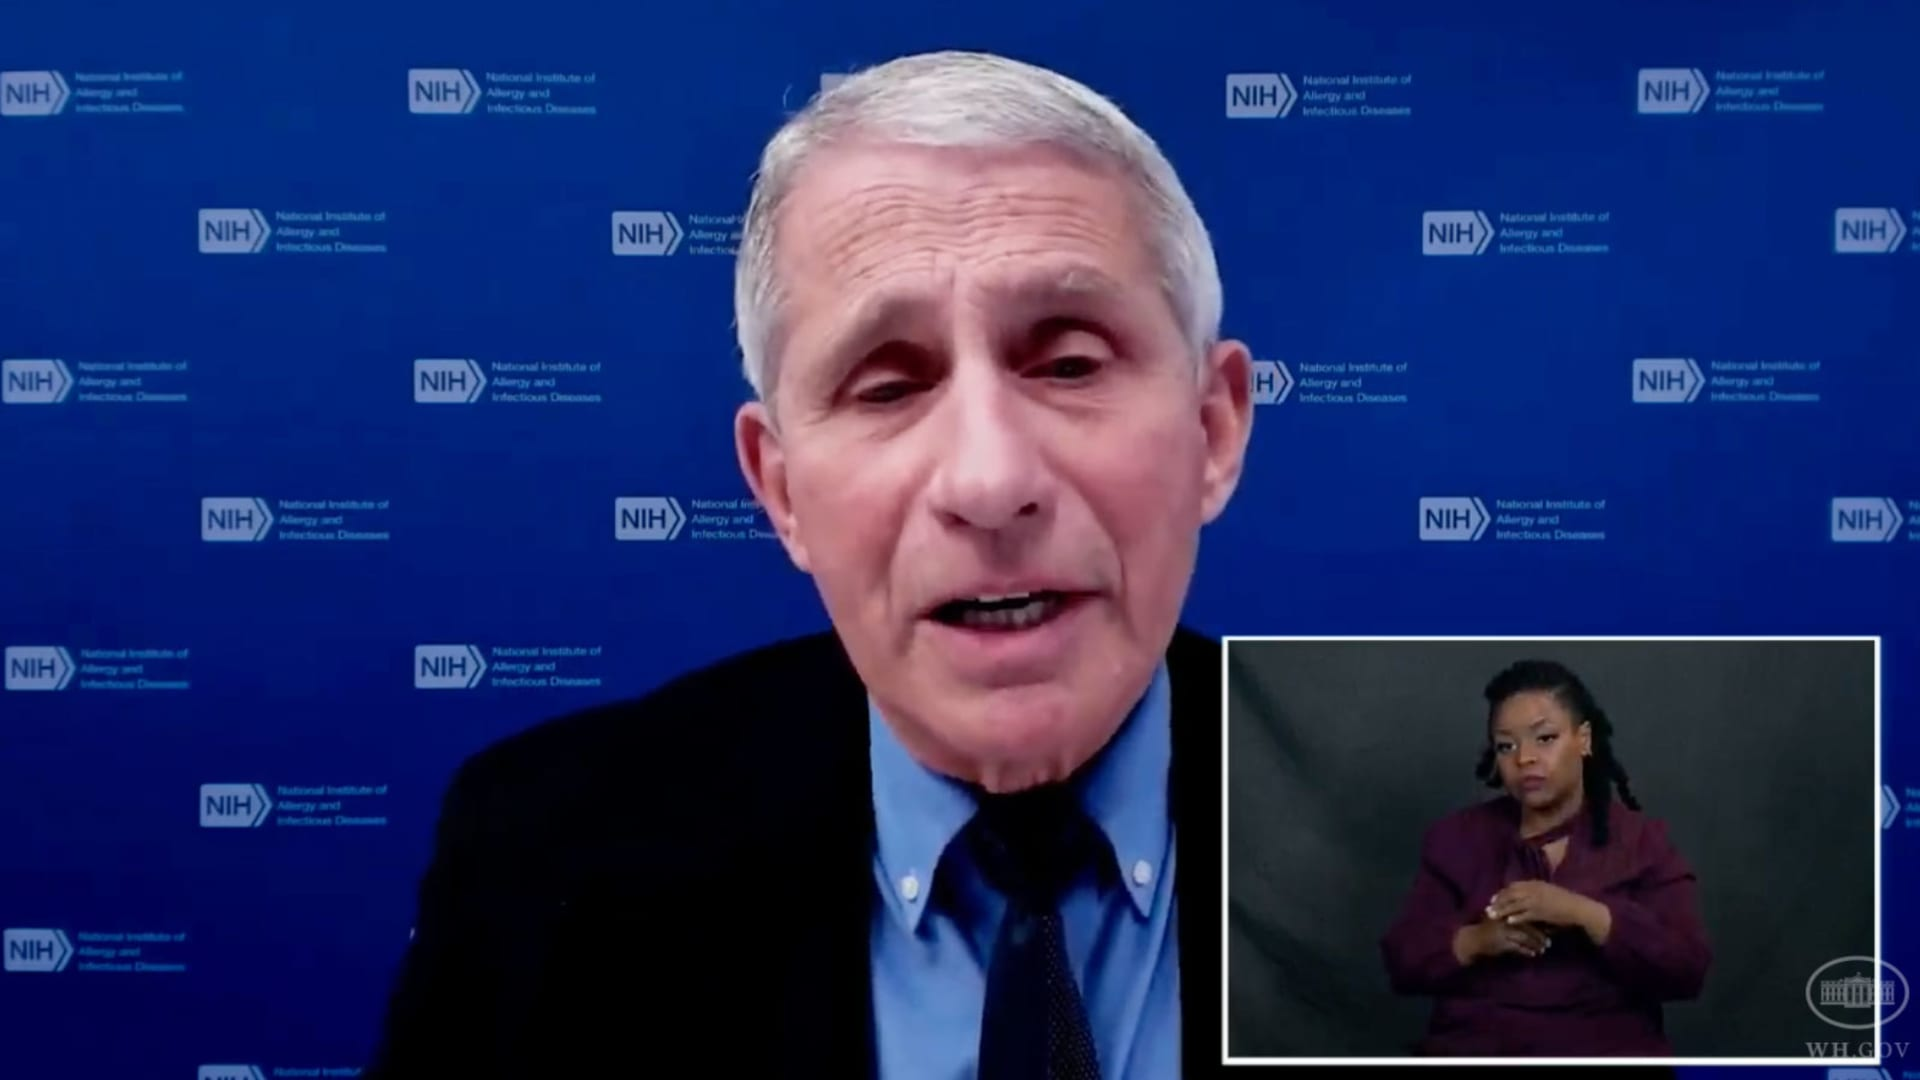 Dr. Anthony Fauci on White House virtual press conference